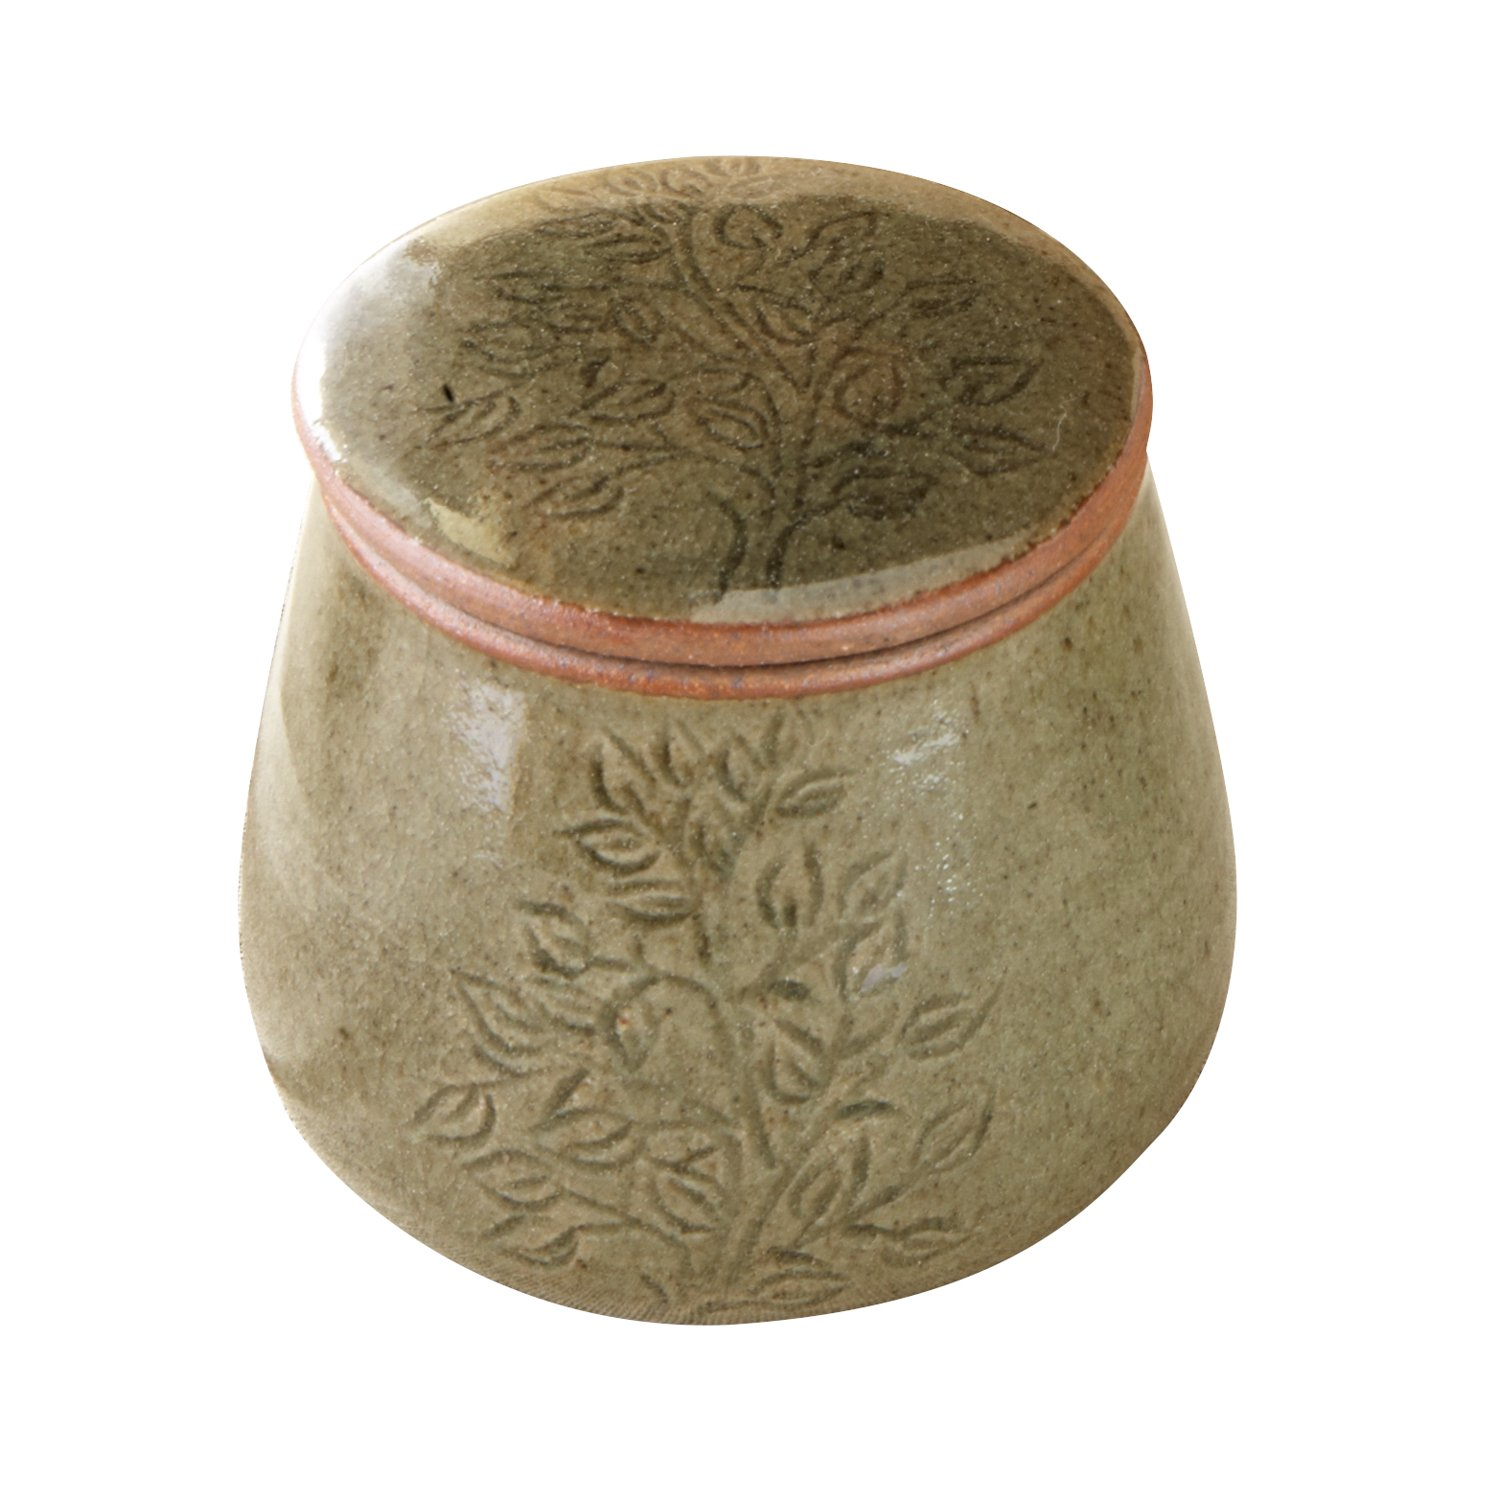 Ceramic Butter Keeper 'Cambodian Butter Crock'